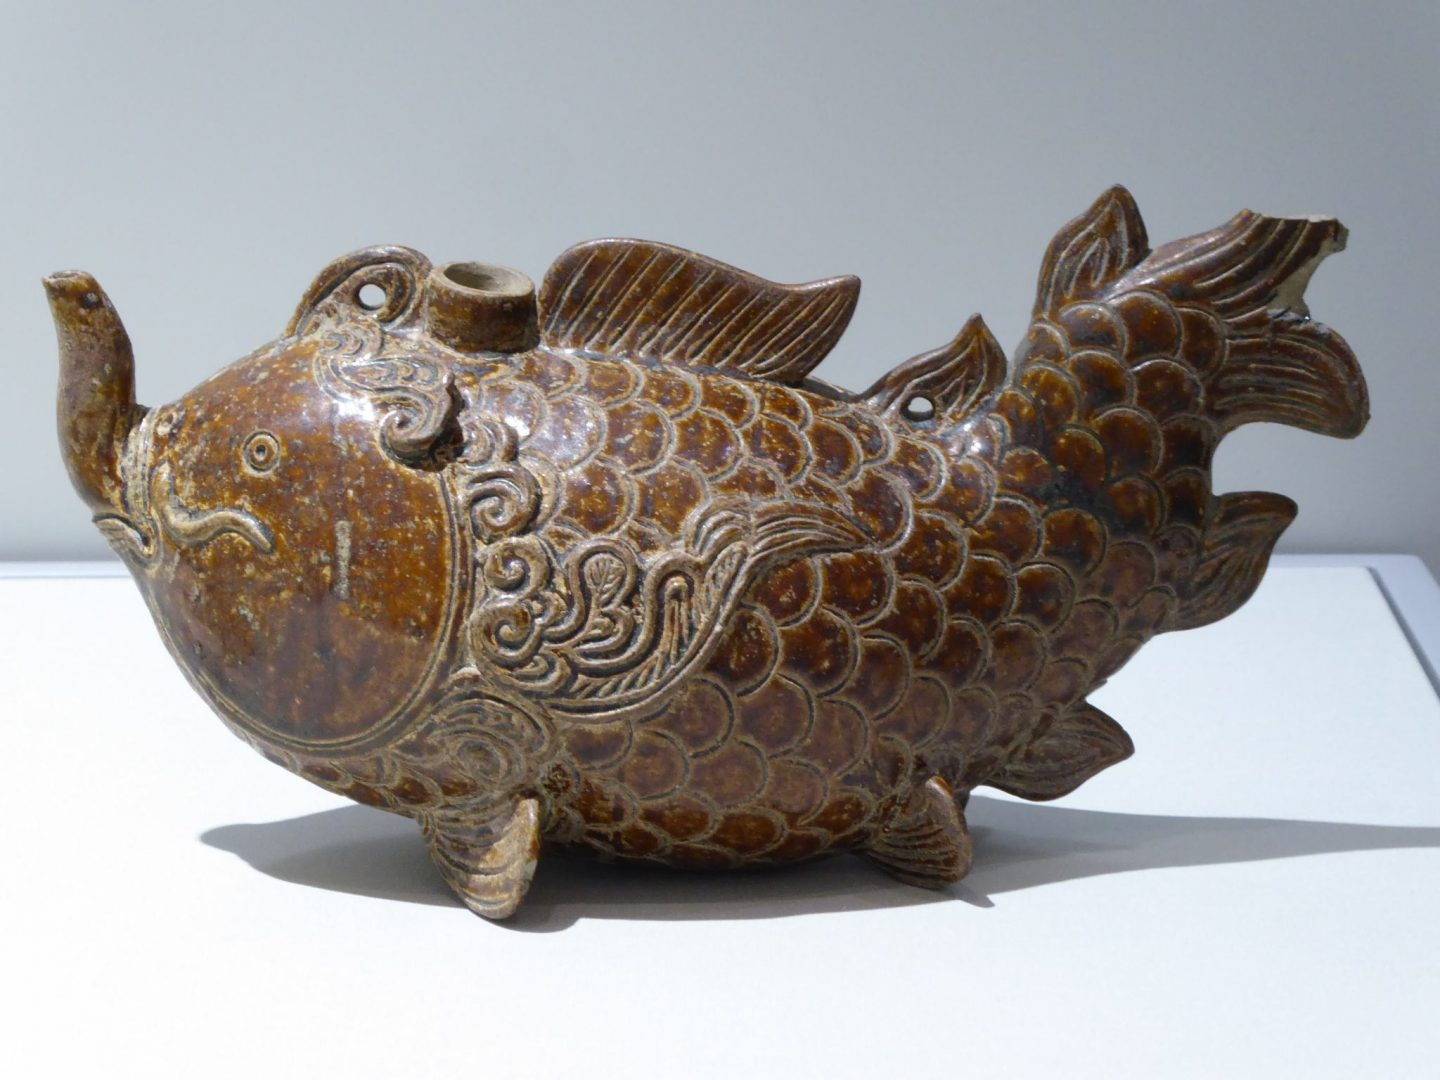 A Vietnamese Pitcher made between the 15th and 17th Centuries - on display at The Asian Civilisations Museum - Singapore